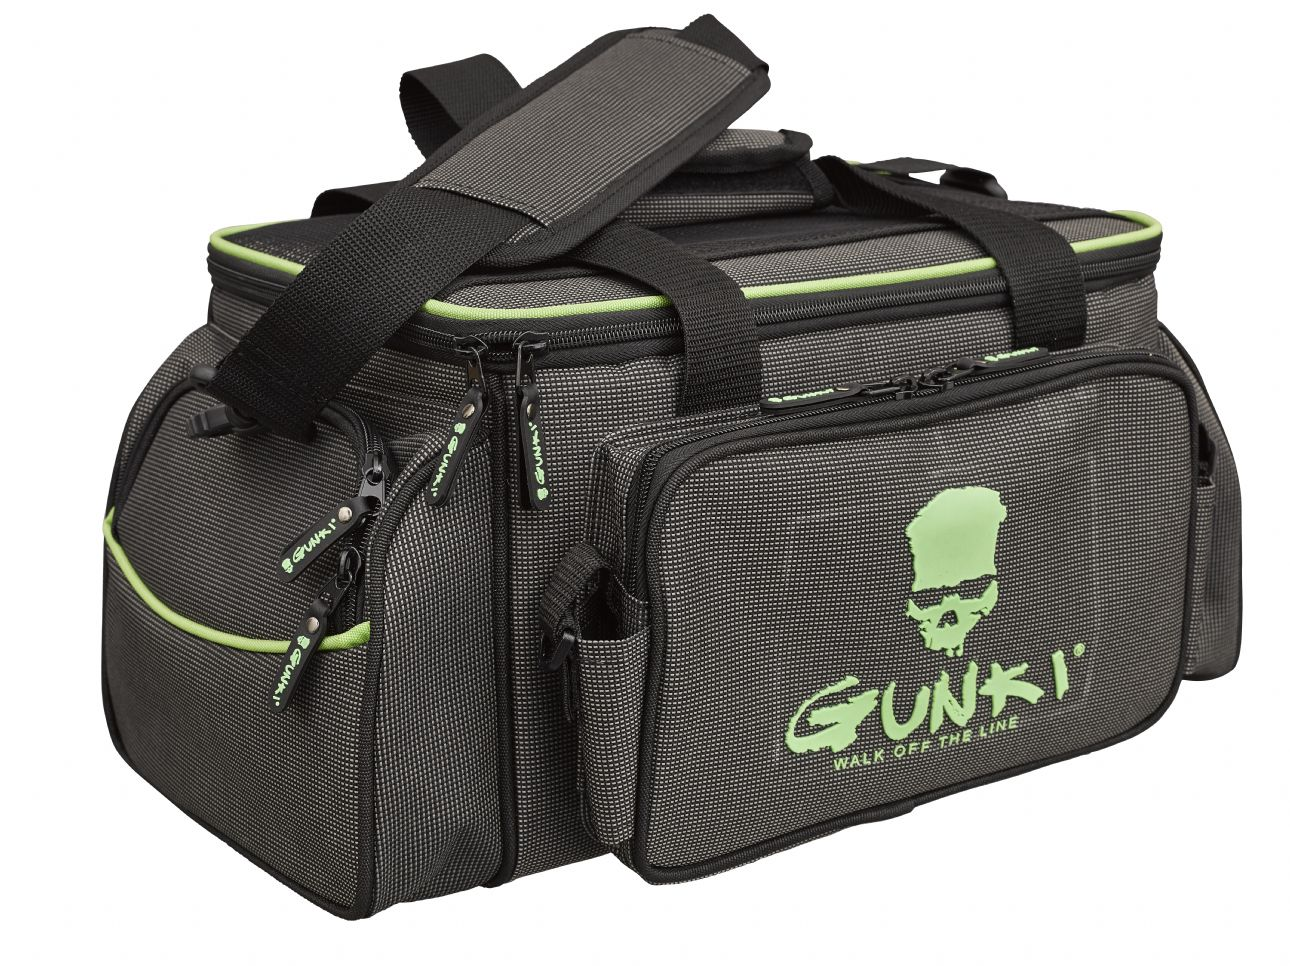 Gunki Iron-T Box Bag Up Zander Pro